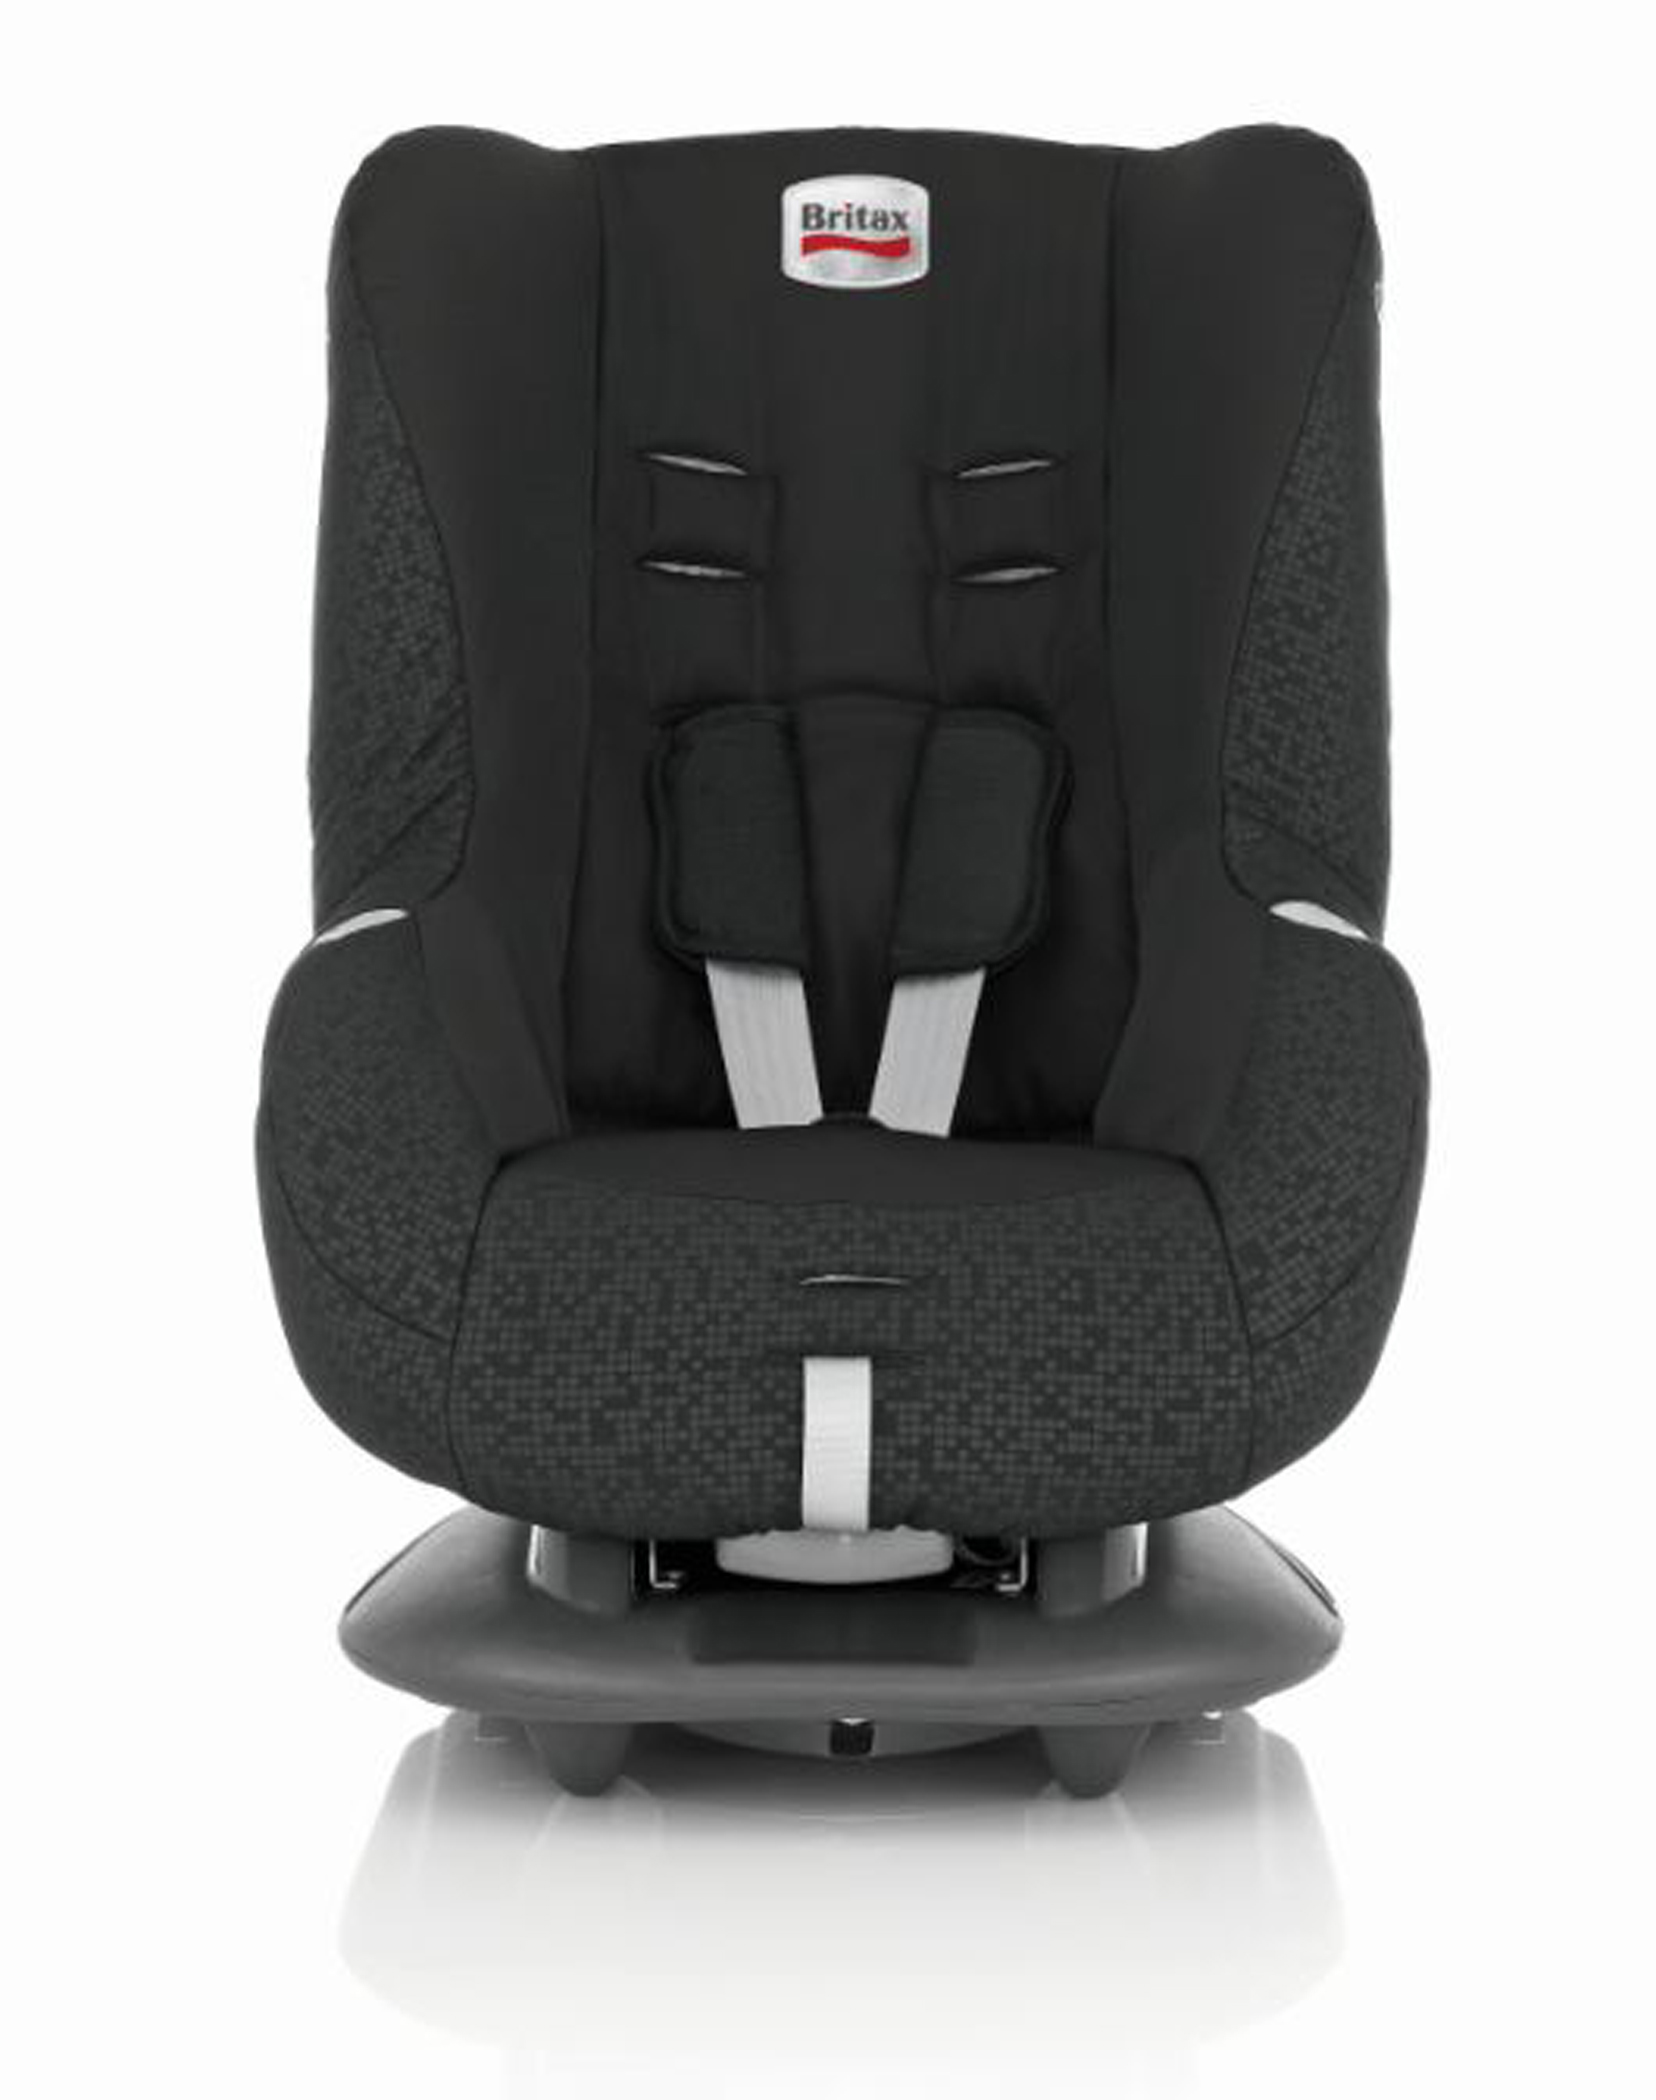 Britax Eclipse Car Seat Fitting Instructions